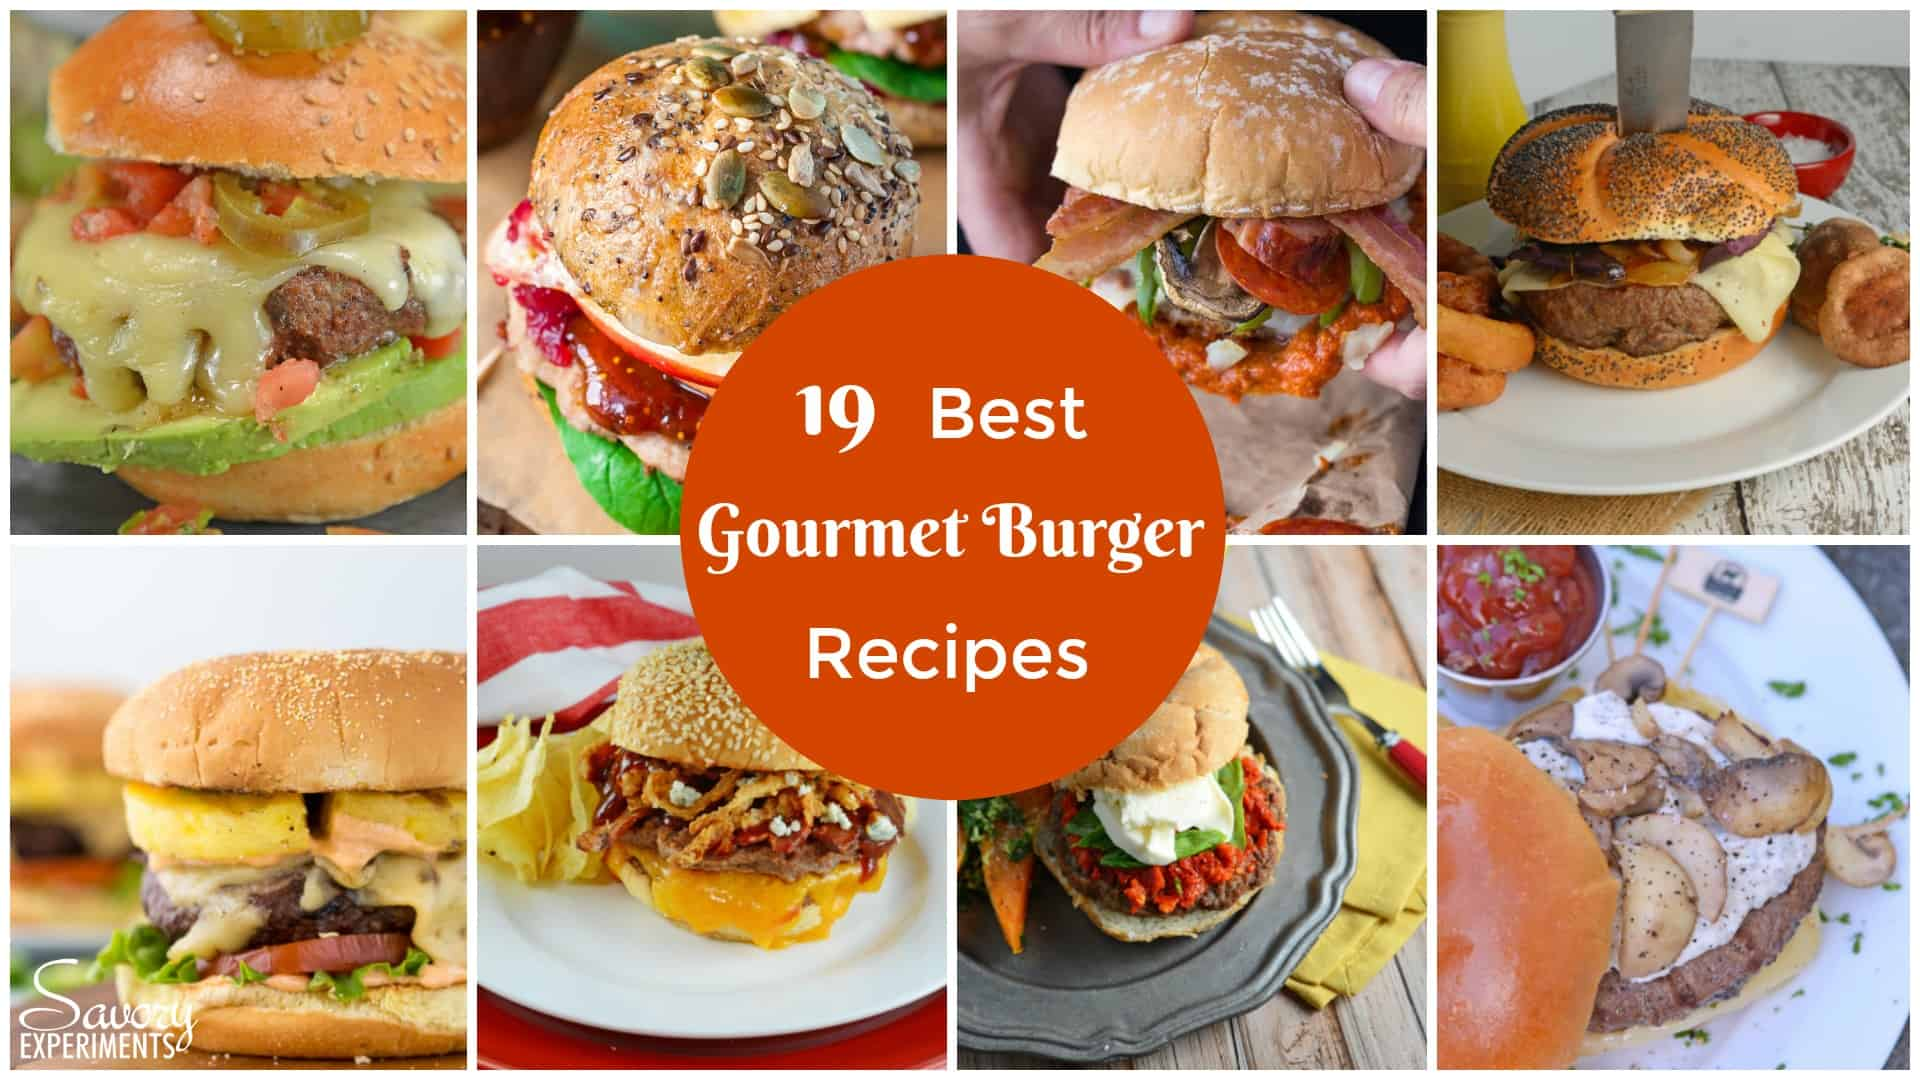 The Best Gourmet Burger Recipes Featured Image